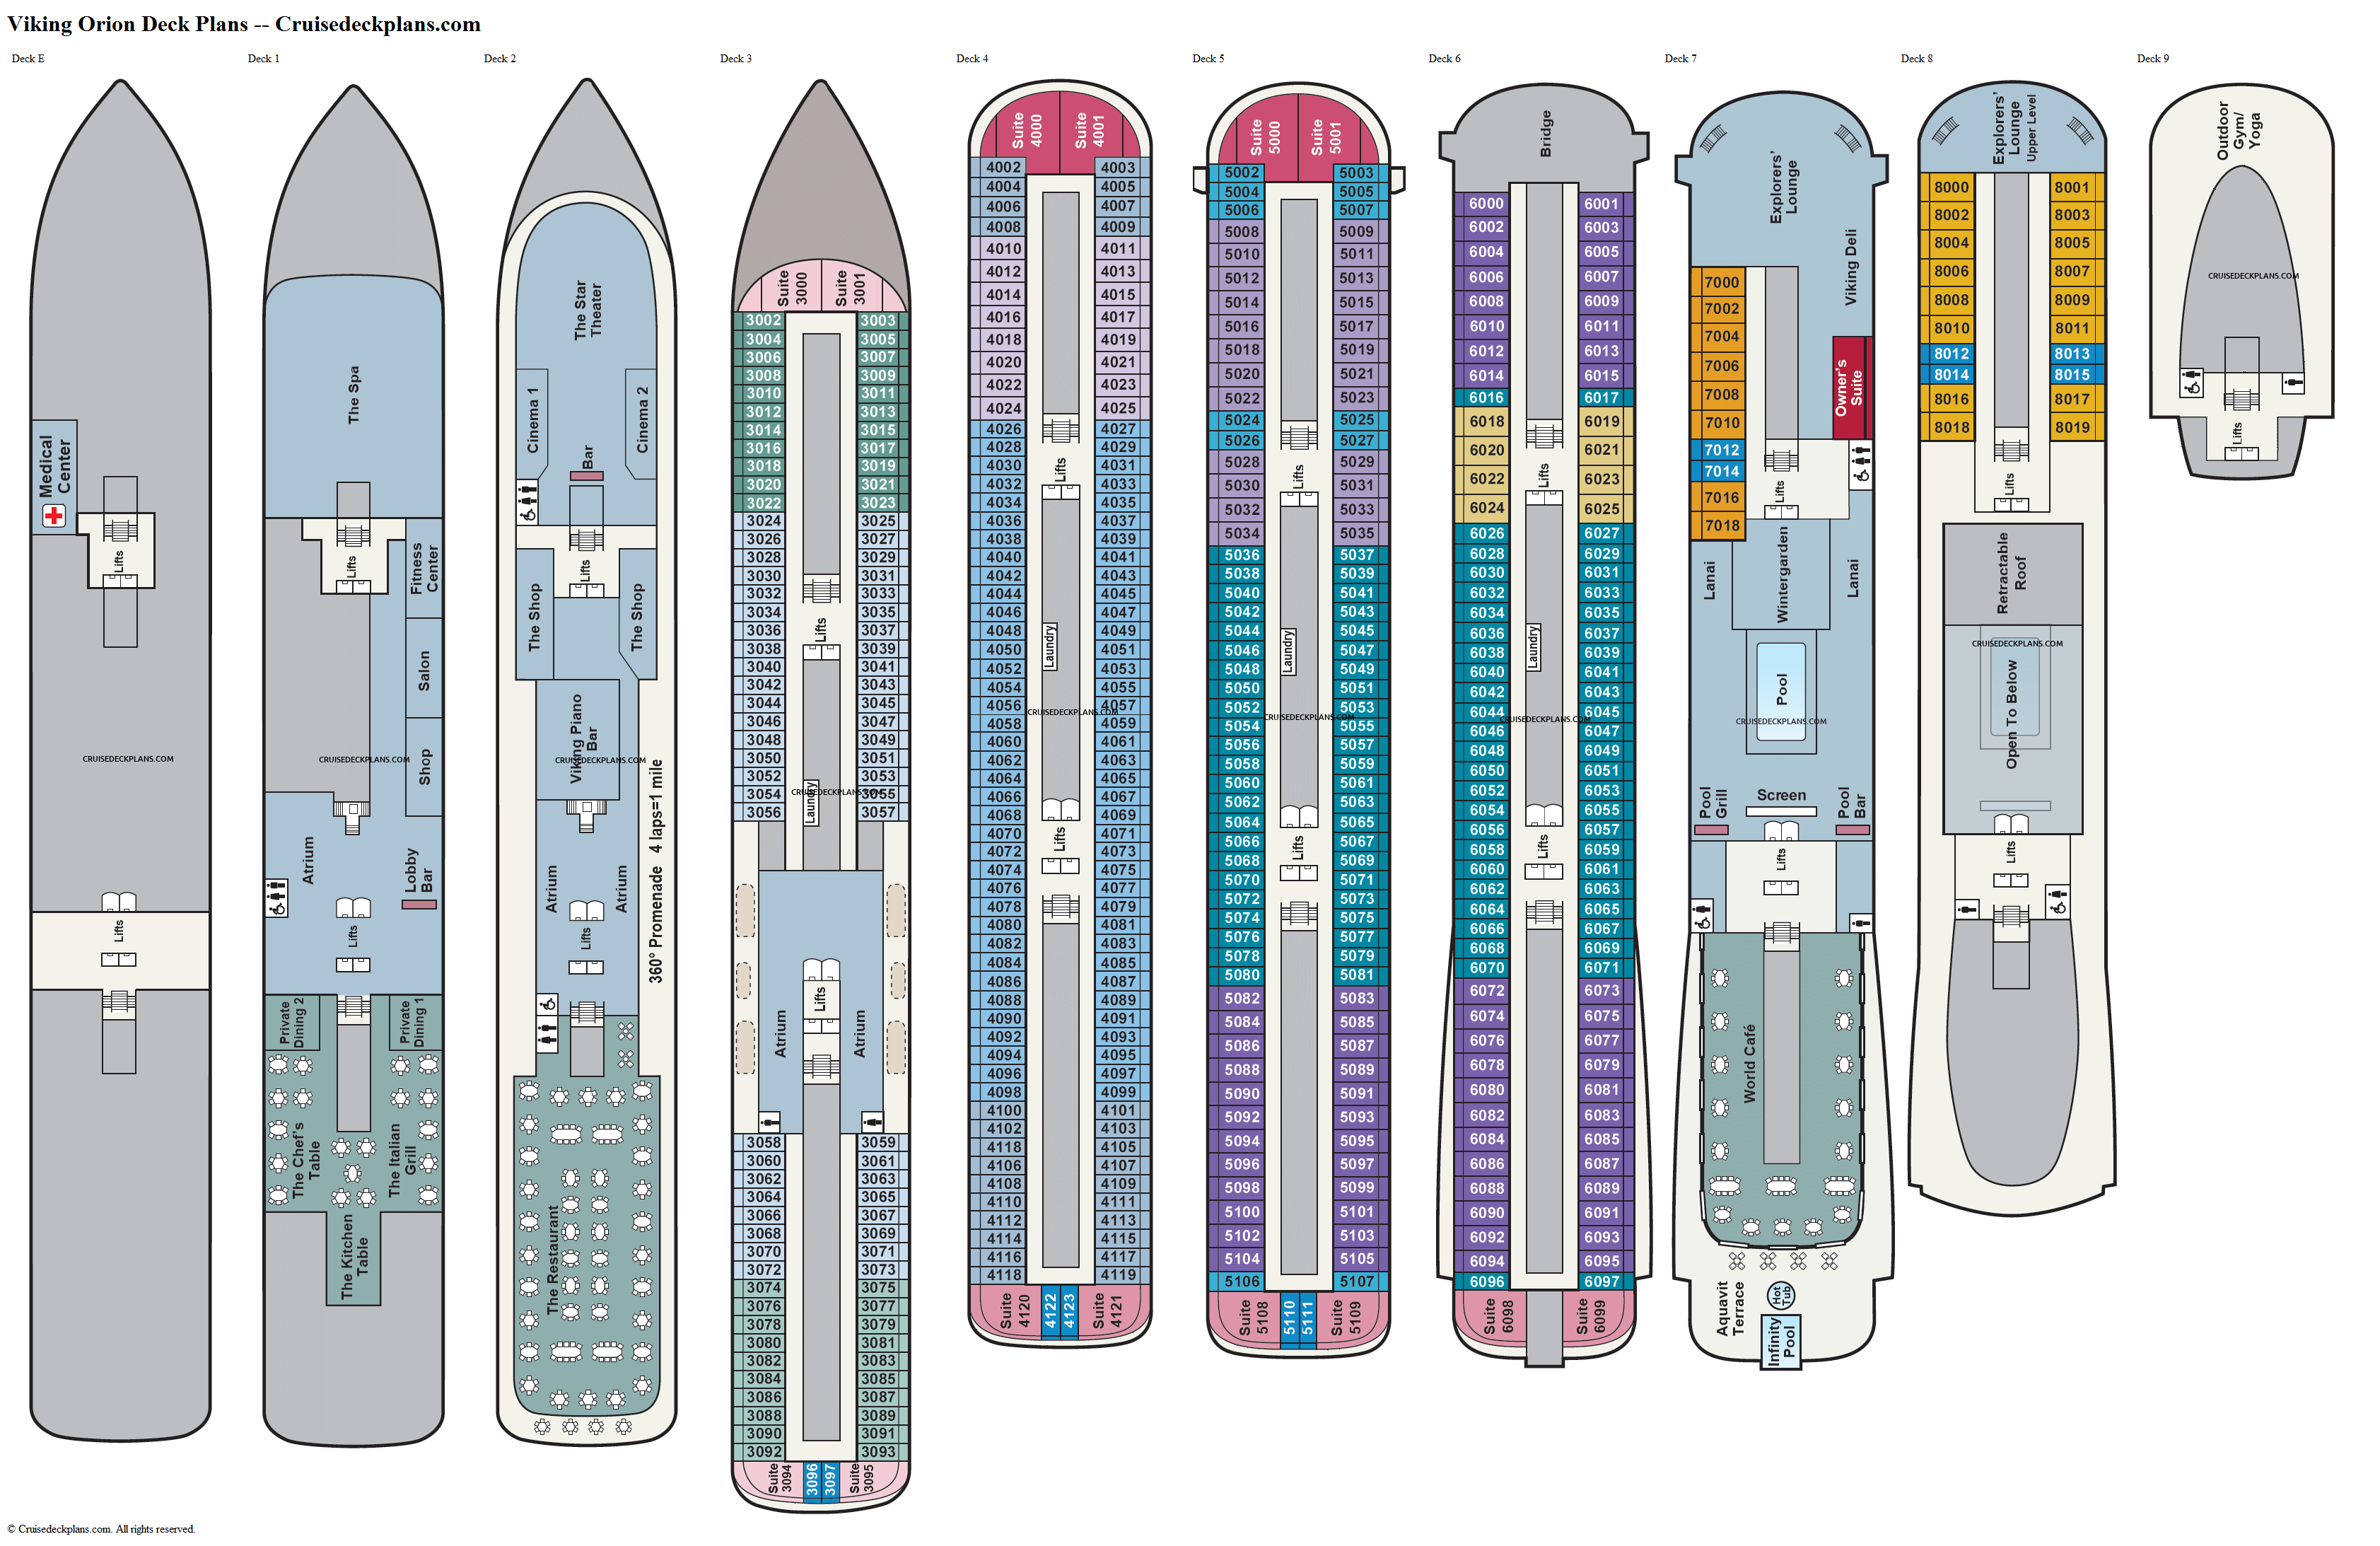 Viking Orion deck plans image